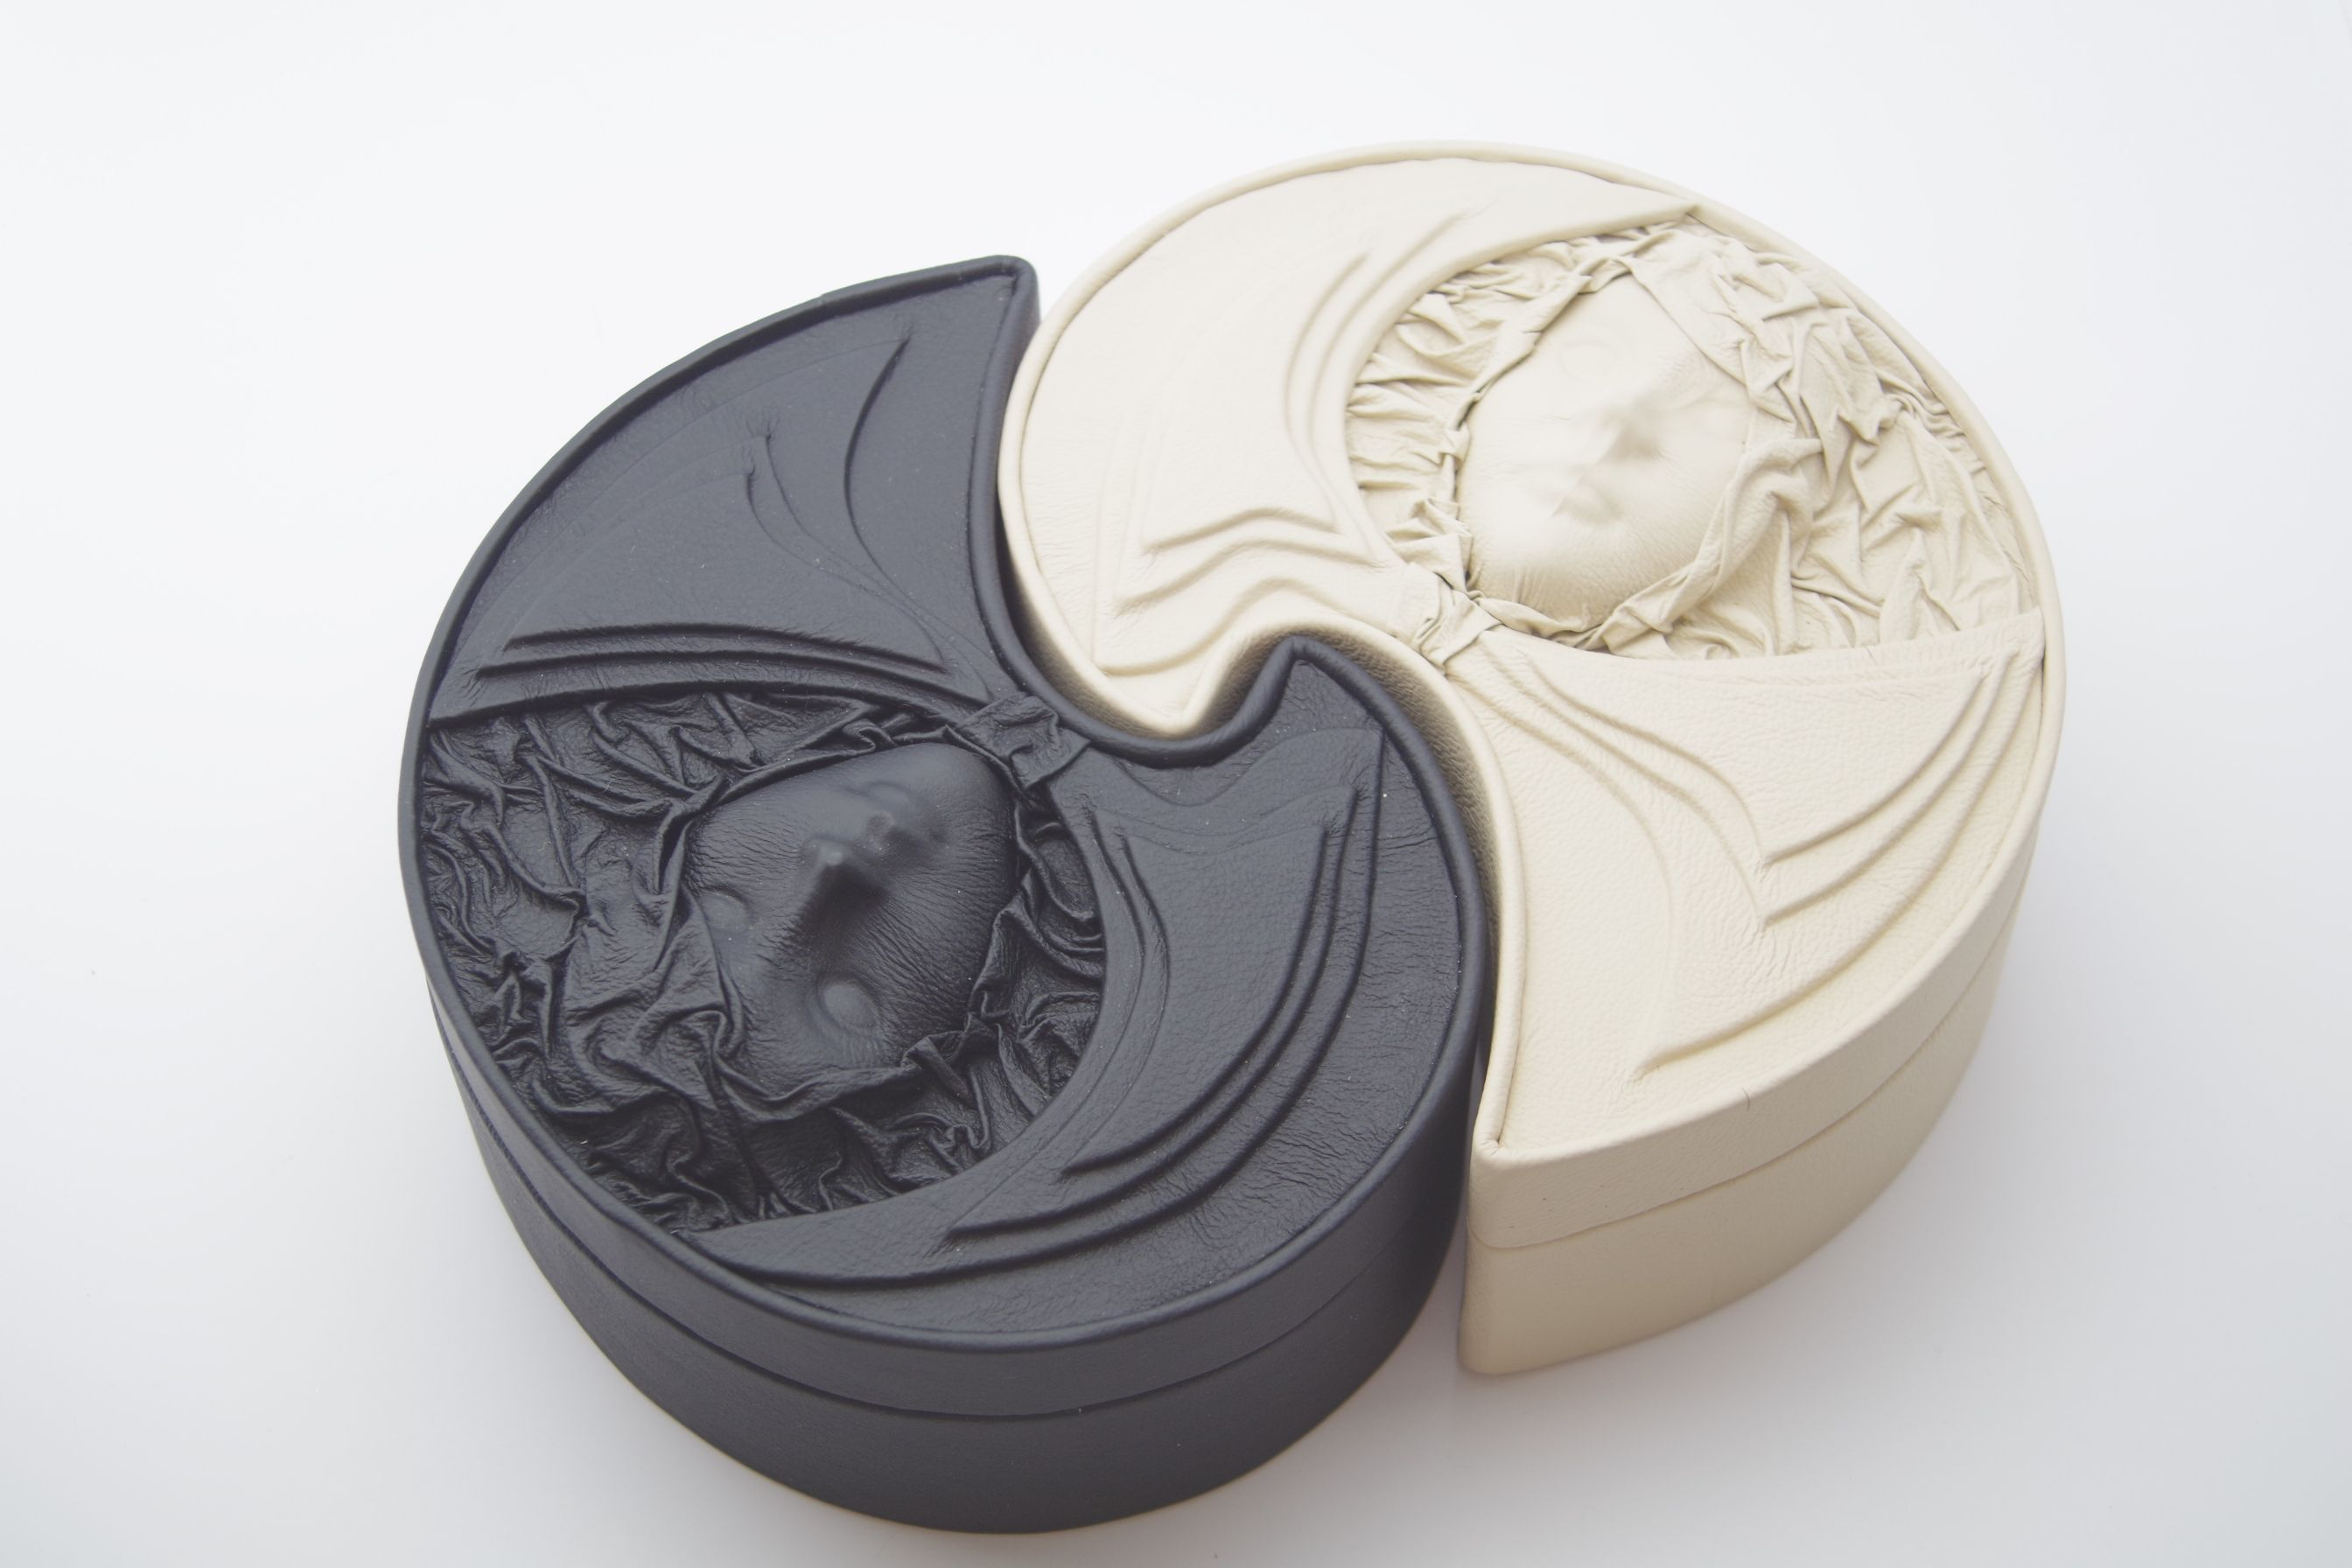 Yin and yang jewellery boxes set big jewellery boxes of crescent